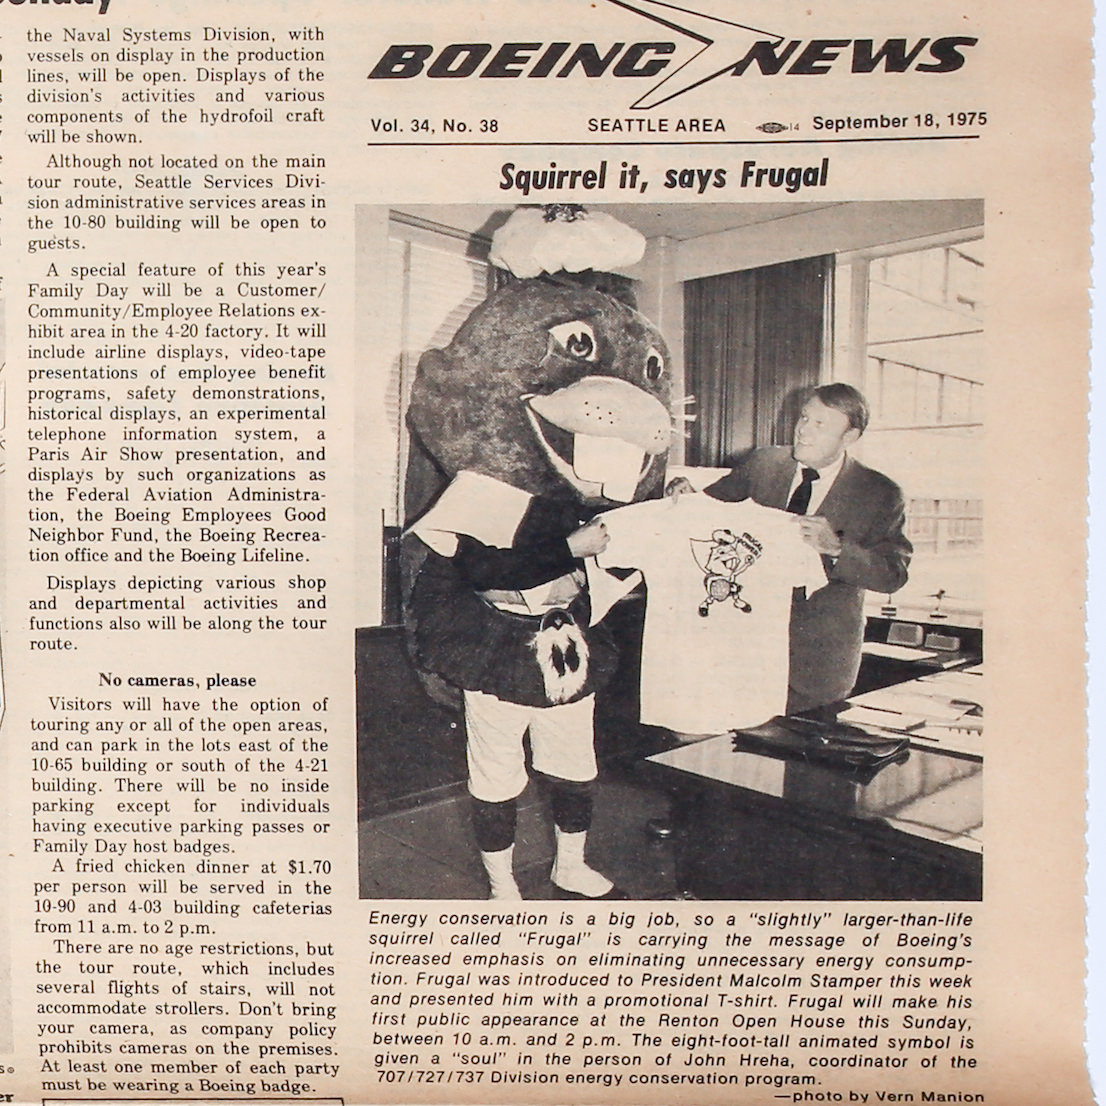 """Boeing News from September 18, 1975 introducing Frugal the Squirrel, Boeing's """"larger-than-life"""" energy conservation mascot."""